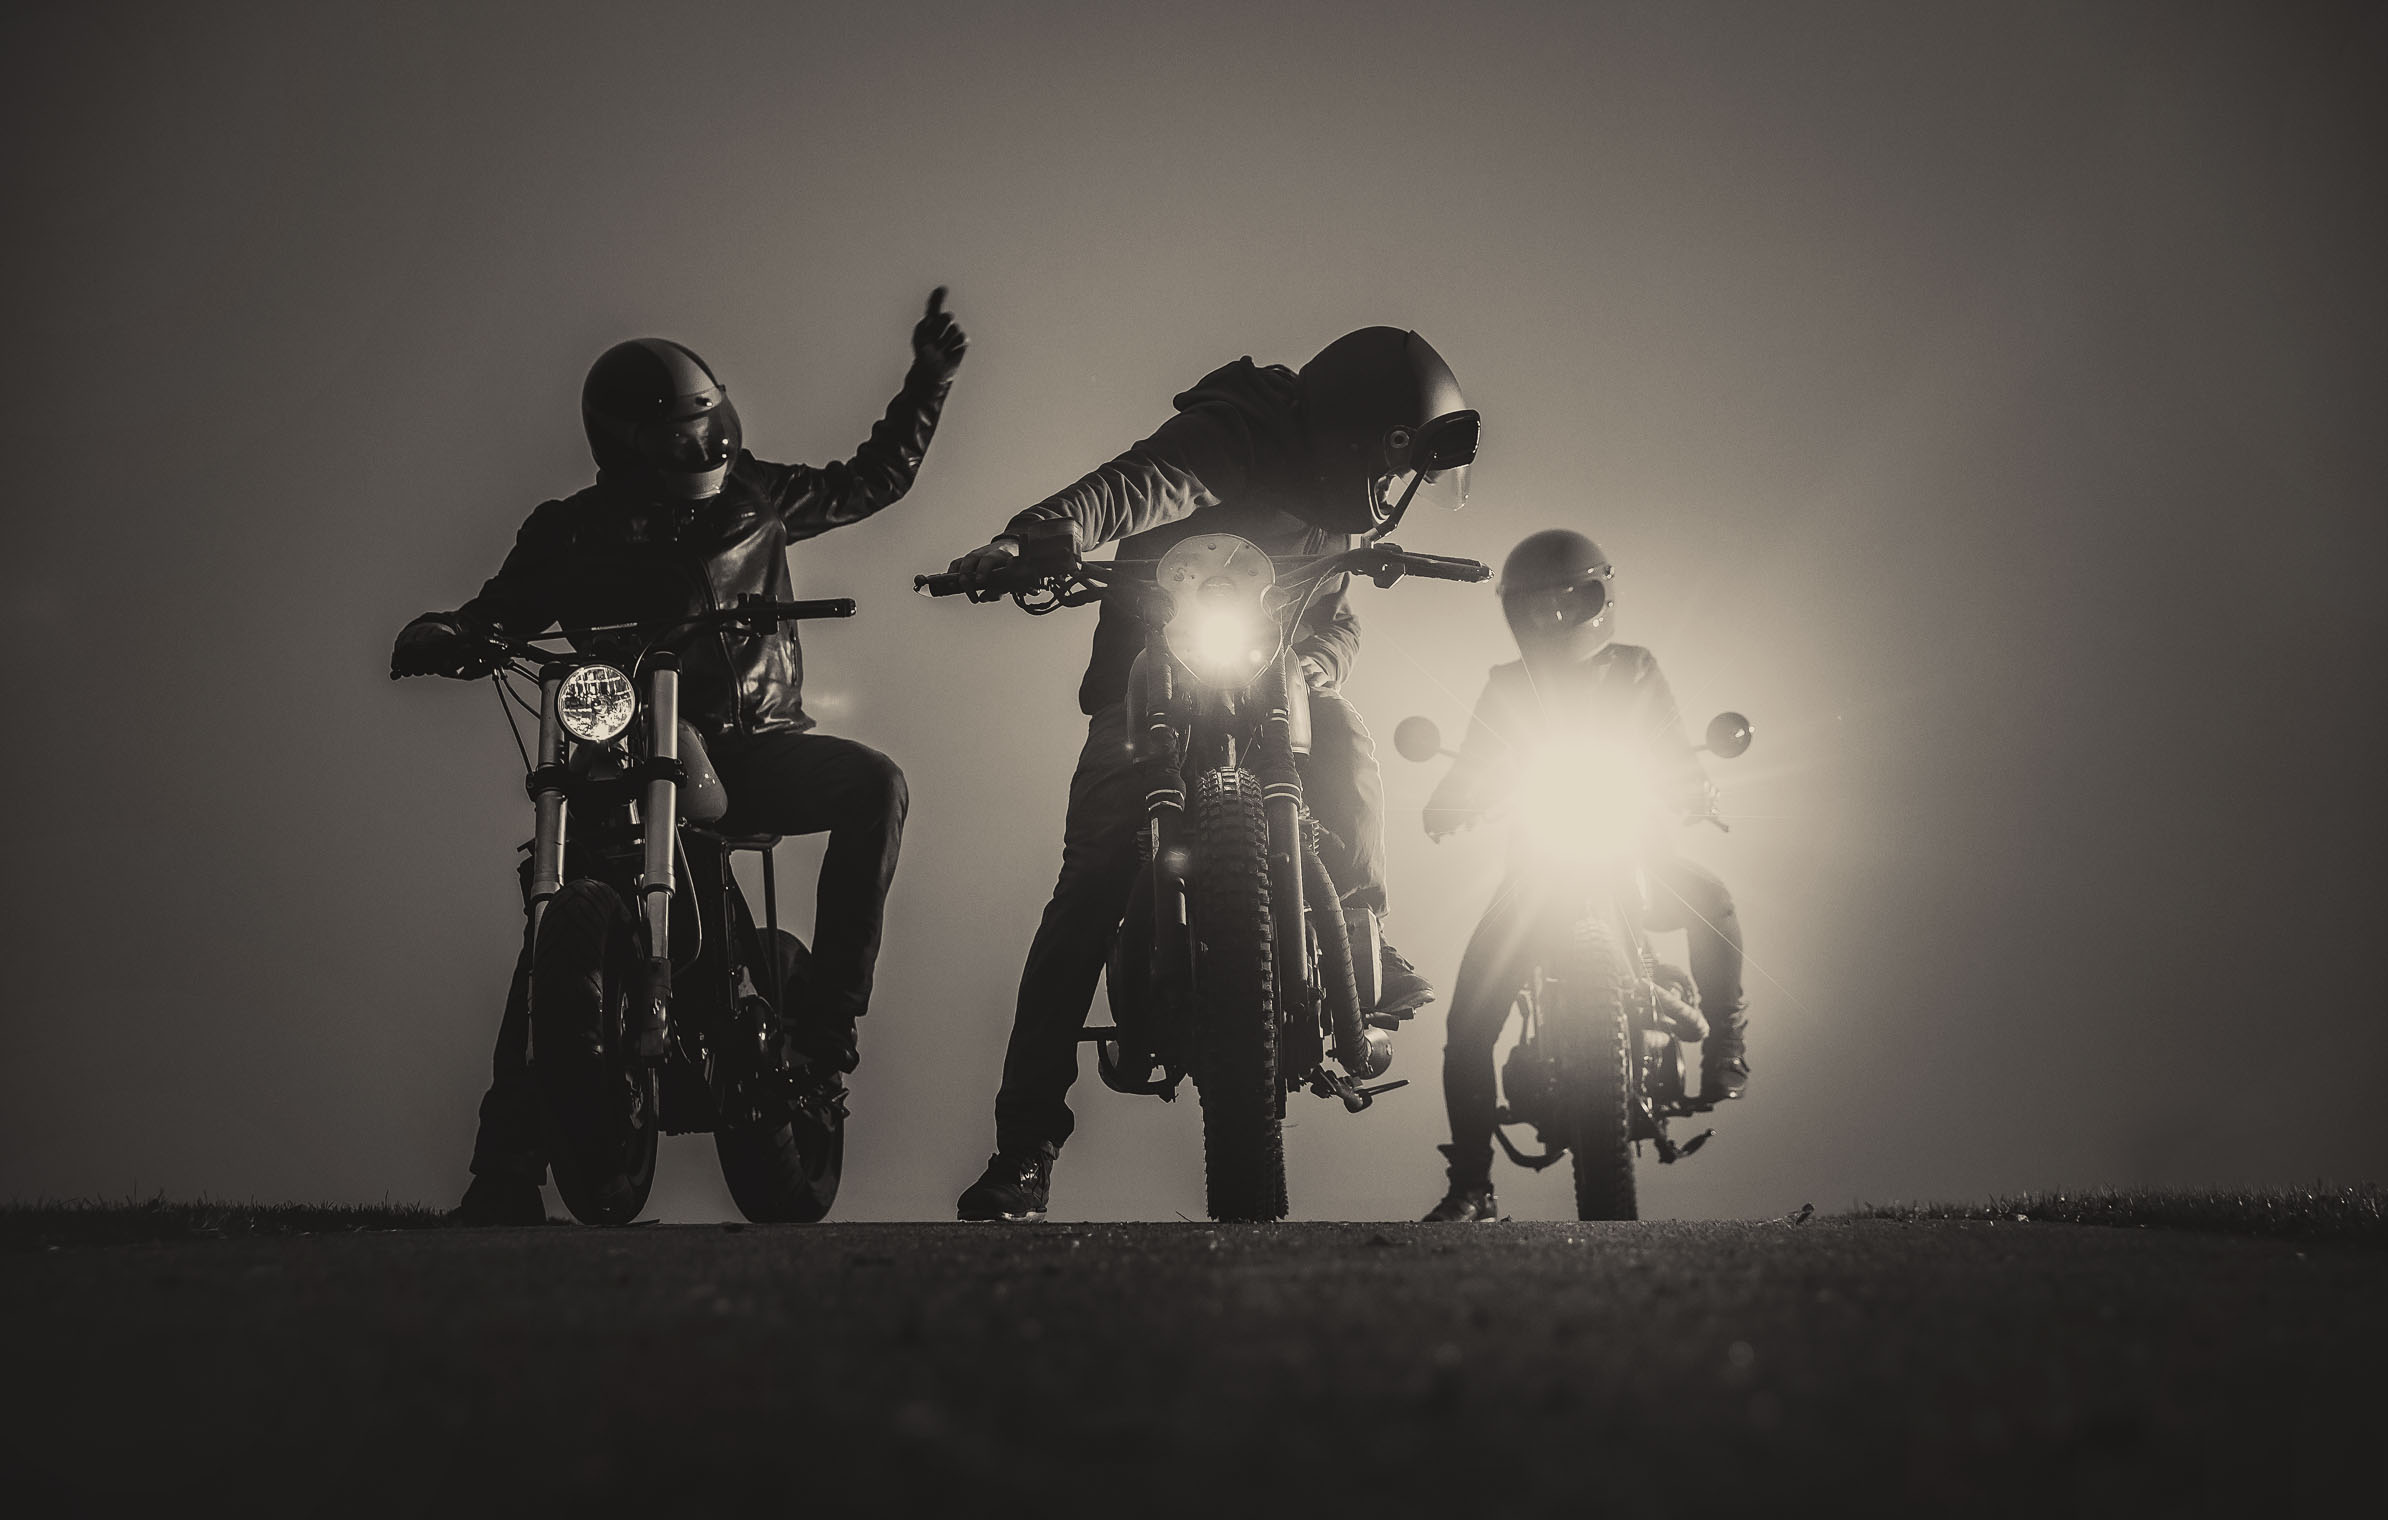 ho_titan_roadtrip_startklar_motorcylce_michl_kälte_cold_winter_new_bw